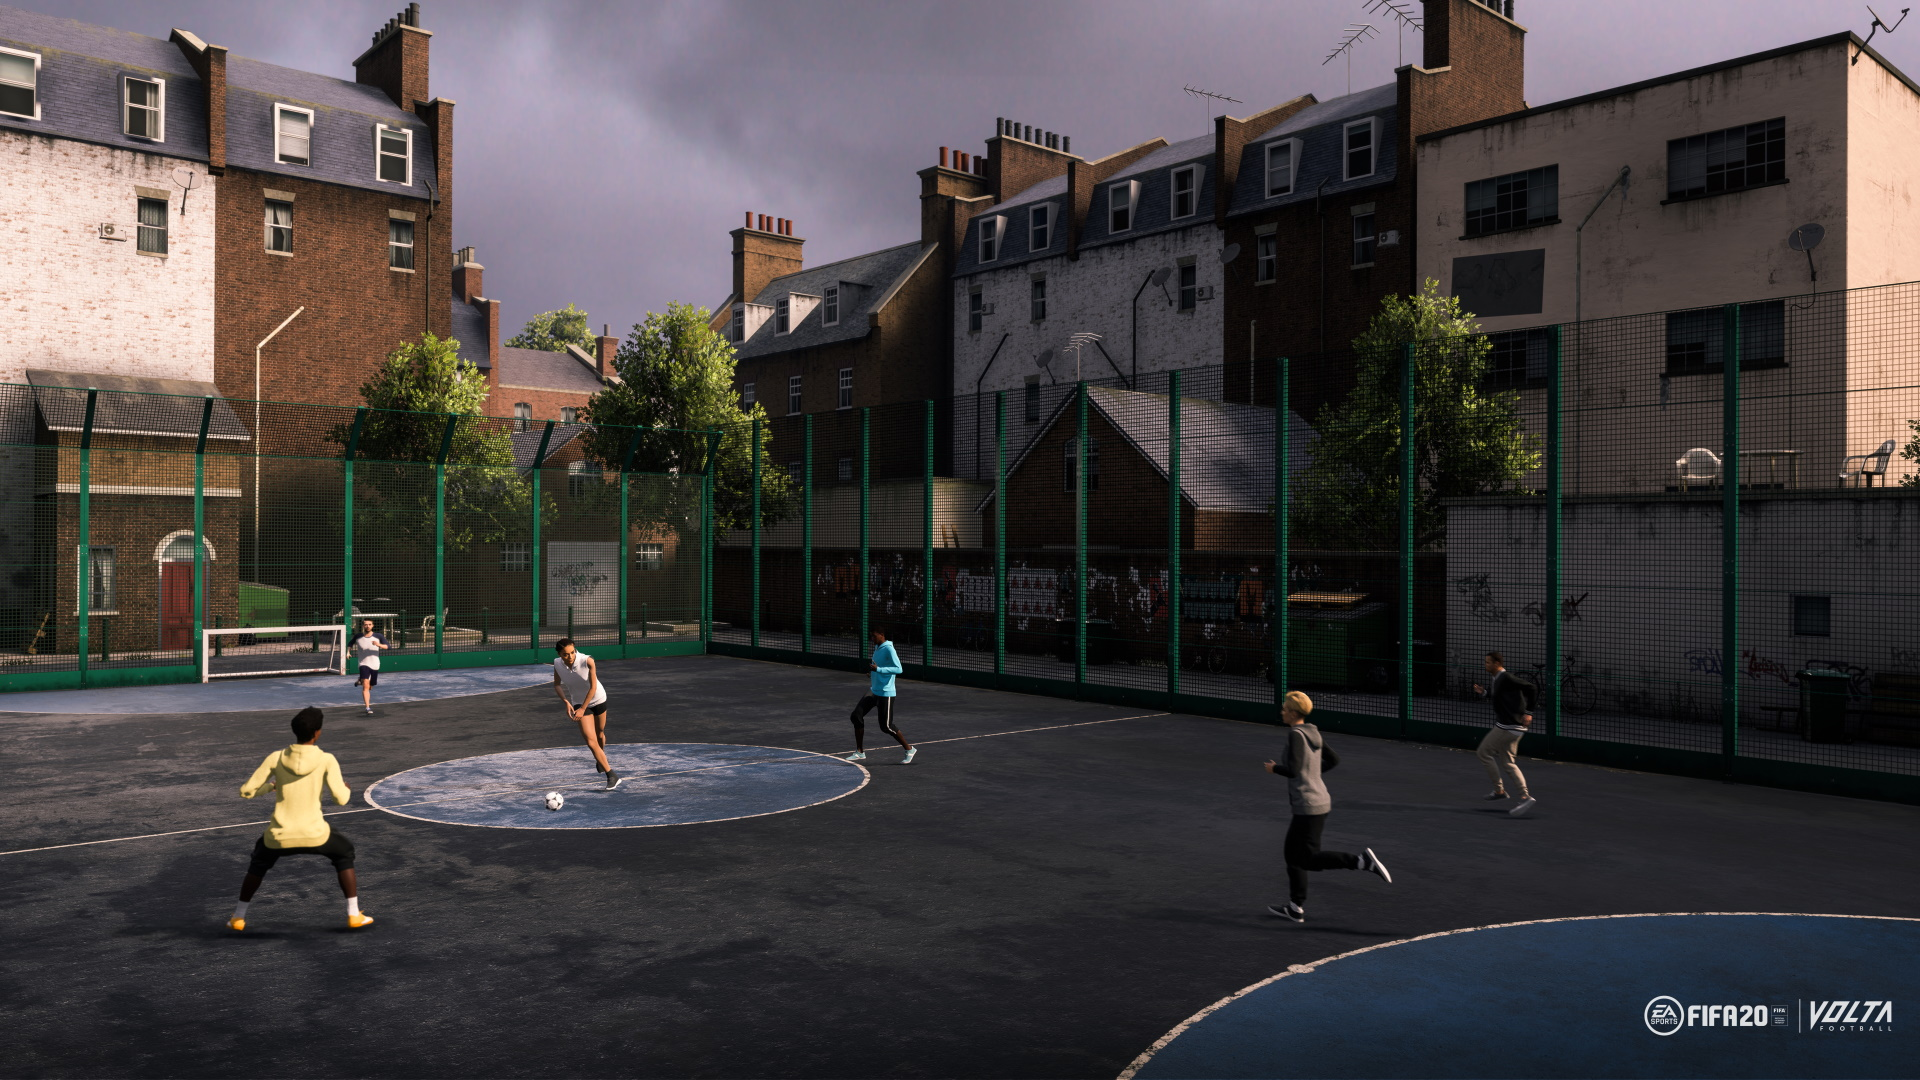 A screenshot from FIFA 20 Volta in London showing smaller goals